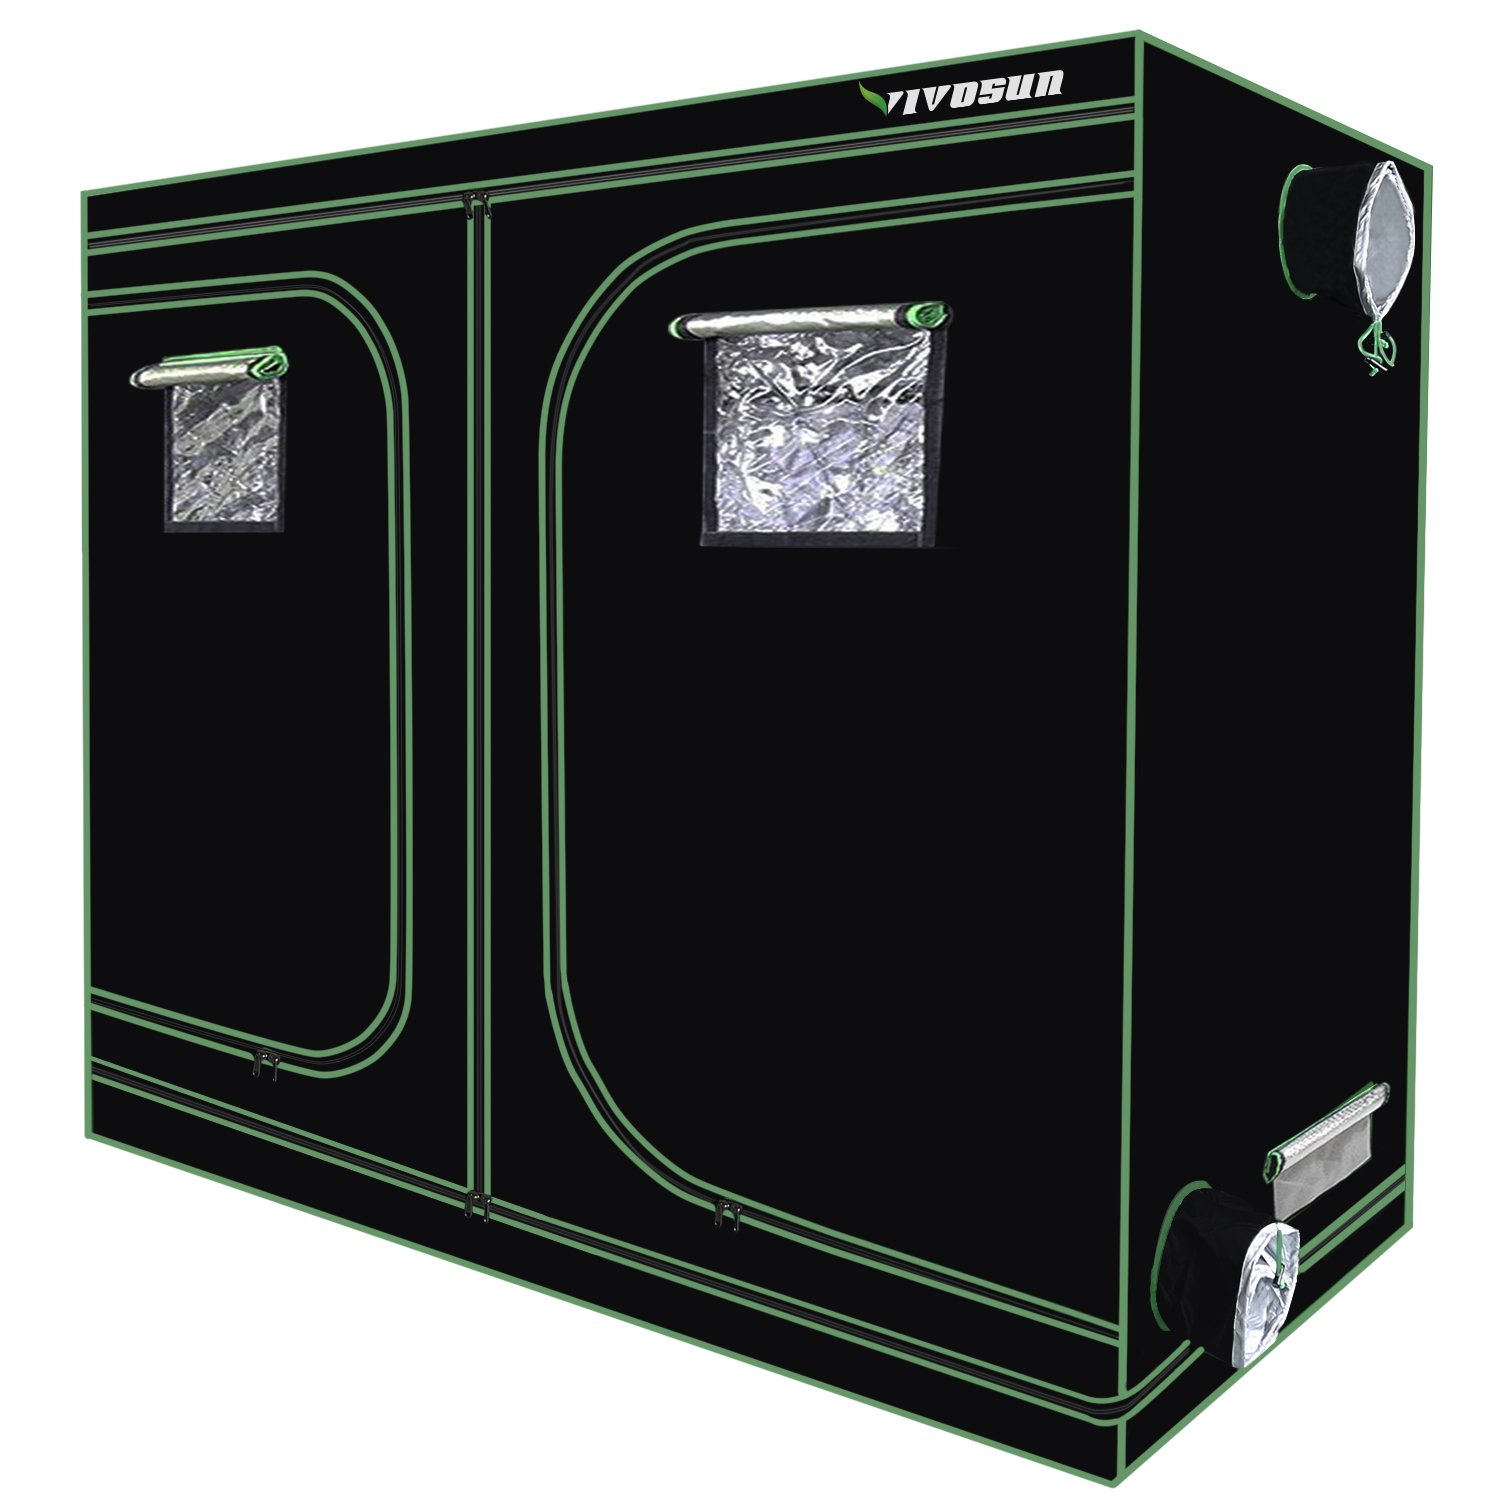 VIVOSUN 96''x48''x80'' Mylar Hydroponic Grow Tent with Observation Window and Floor Tray for Indoor Plant Growing 4'x8'